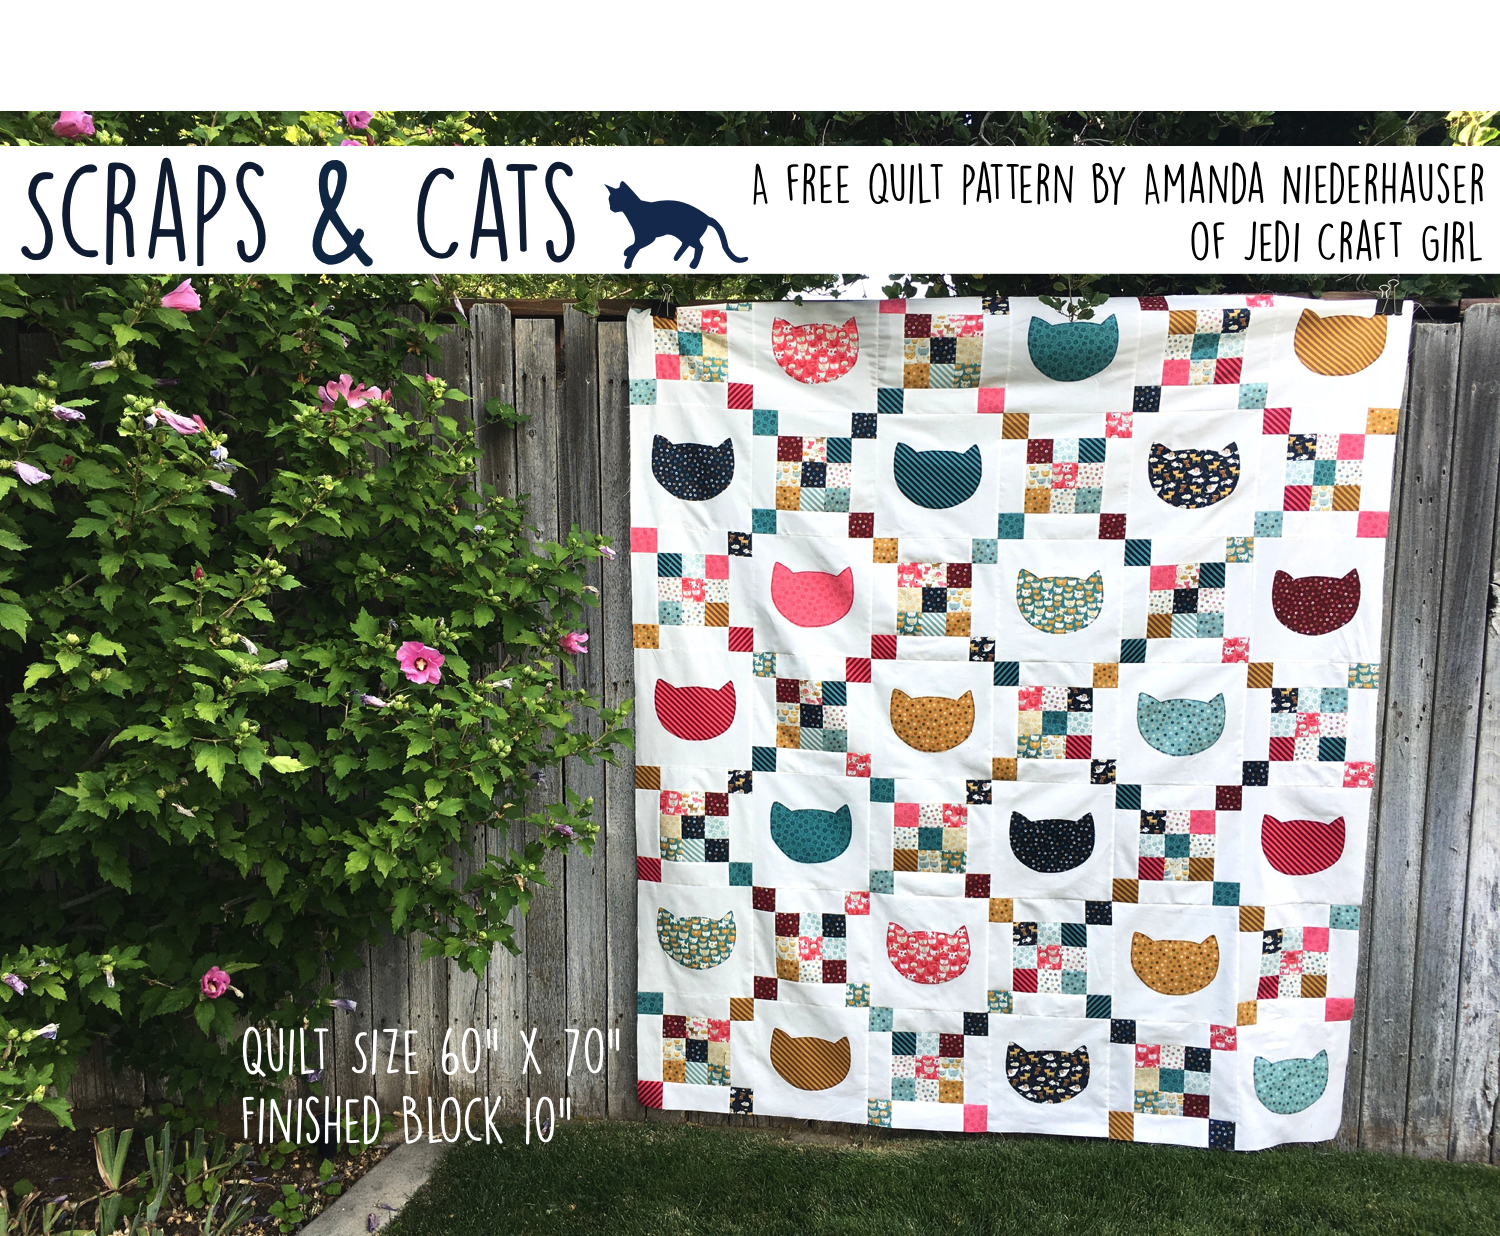 photograph regarding Free Printable Cat Quilt Patterns known as Cats Ss a totally free quilt behavior